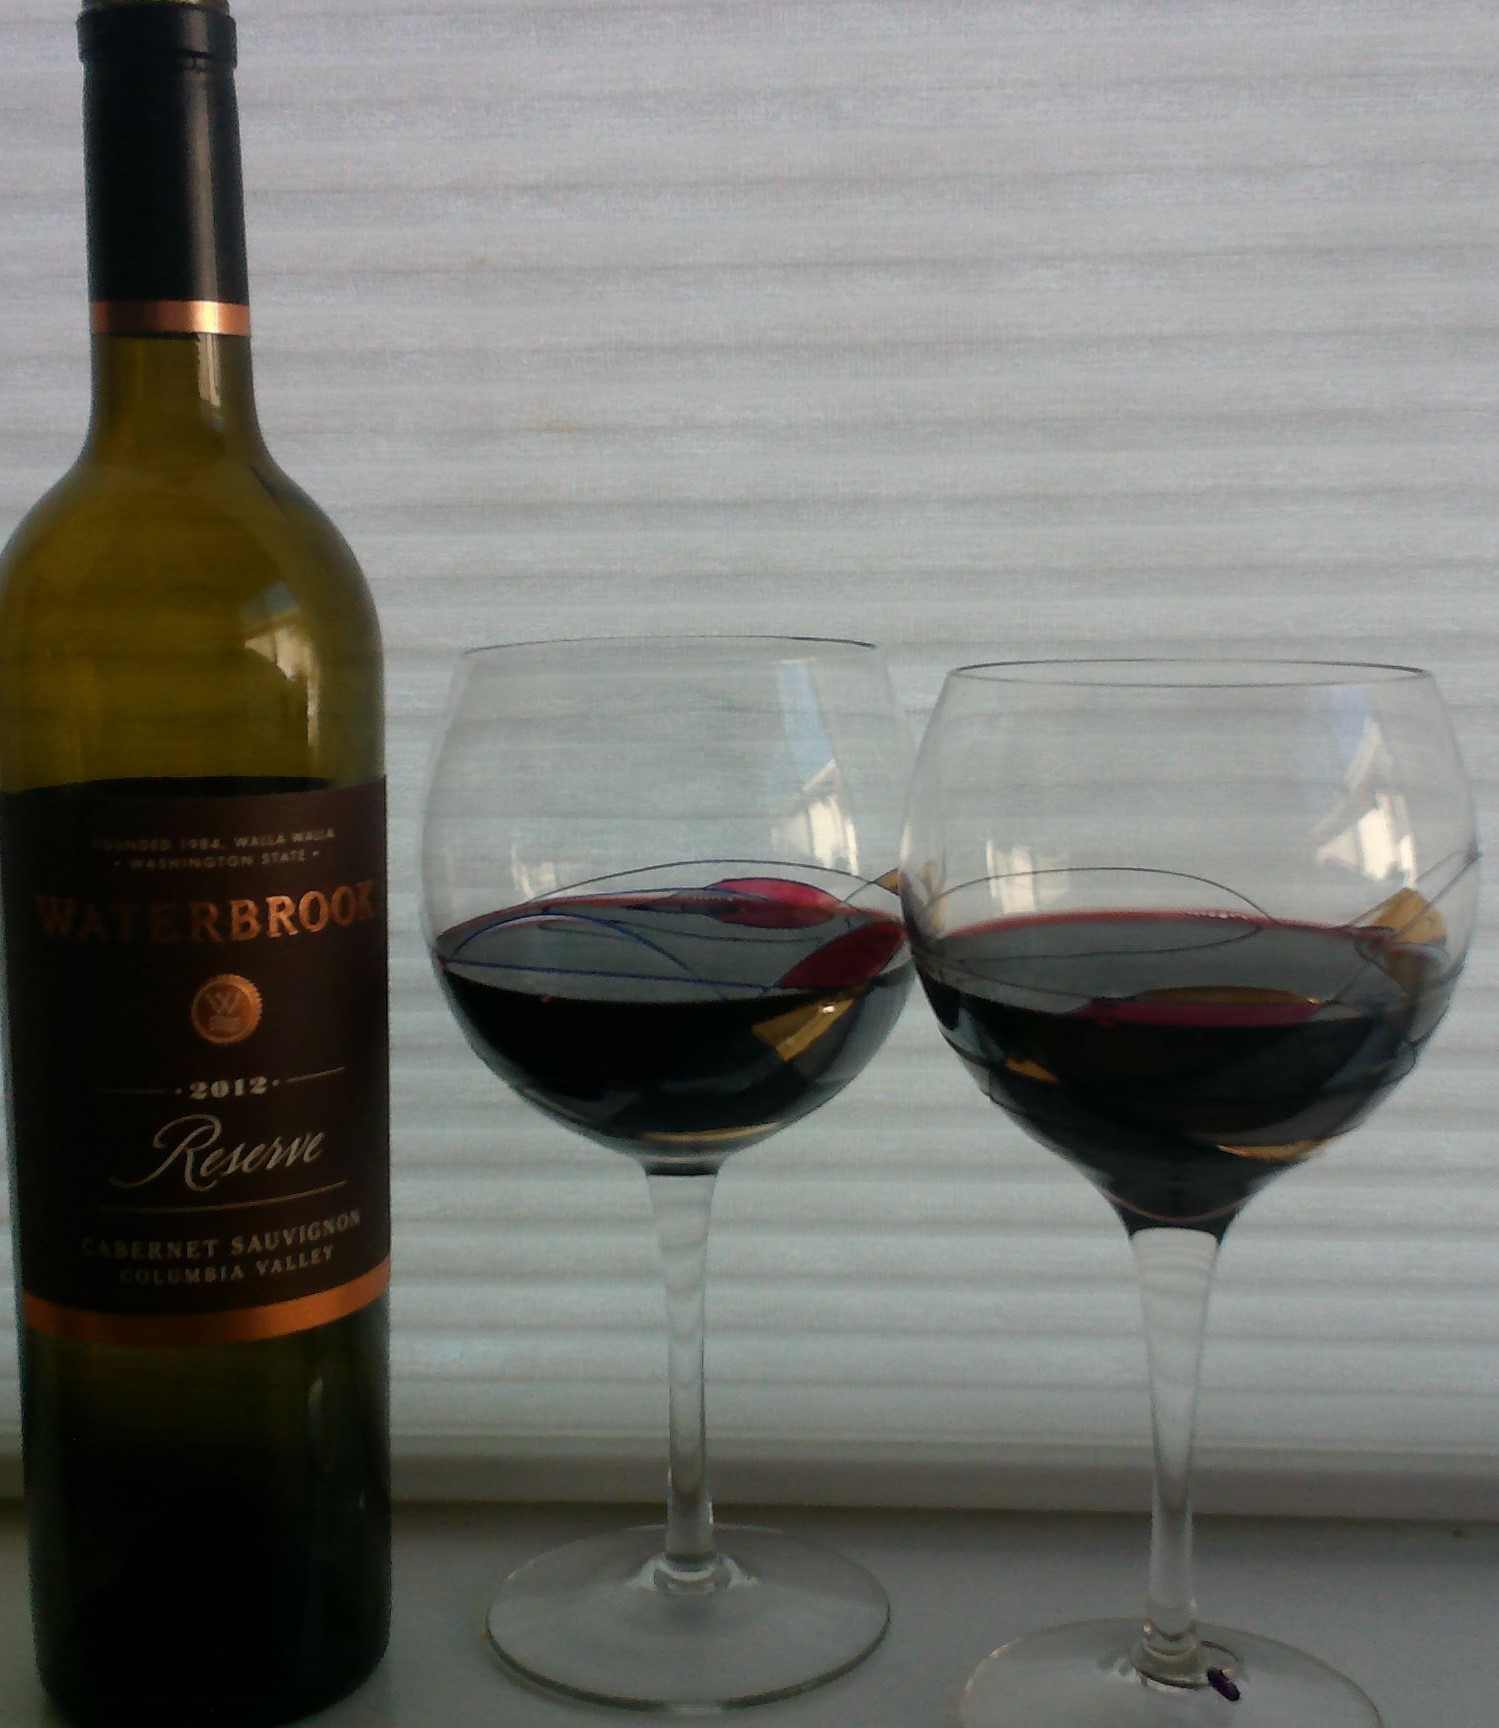 Favorite glasses used to share with MANY favorite people--wine from great client!